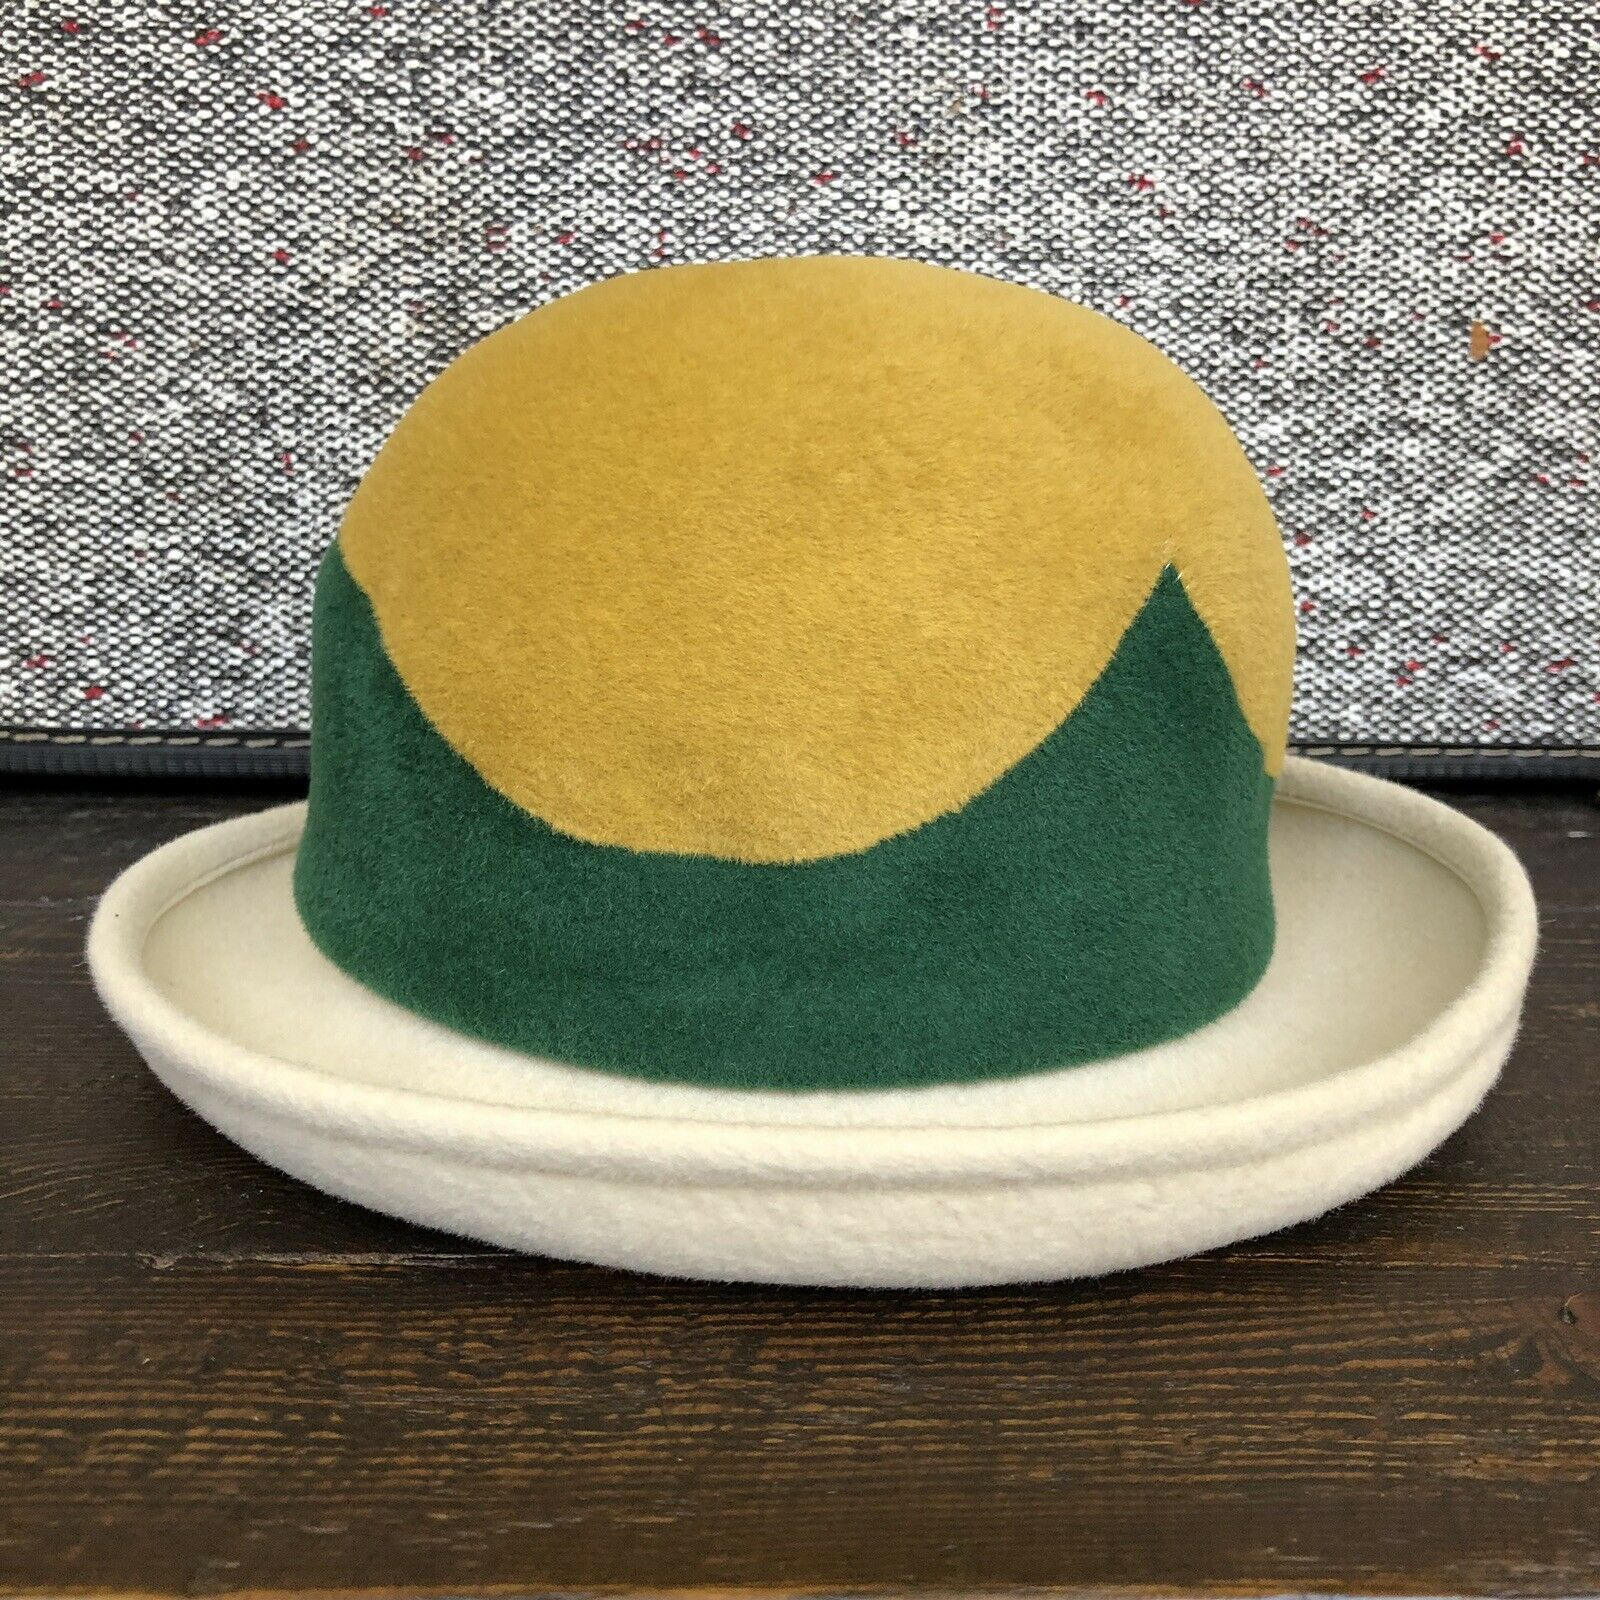 Amazing Hipster VTG Anita Pineault Yellow & Green Bowler Hat Made in Canada